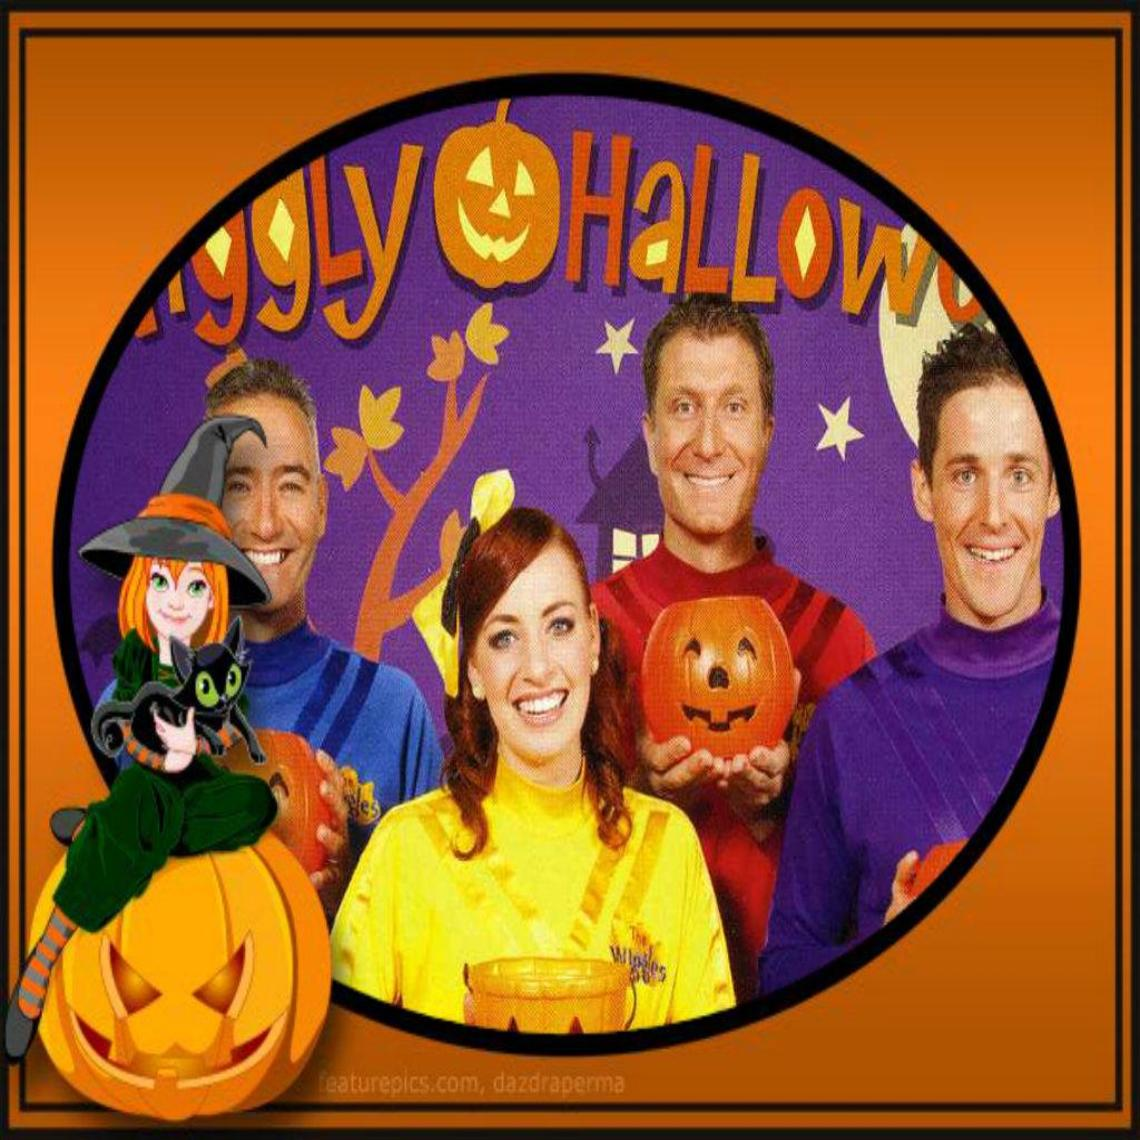 Wallpapers For Wiggles Halloween Wallpaper | www.showallpapers.com